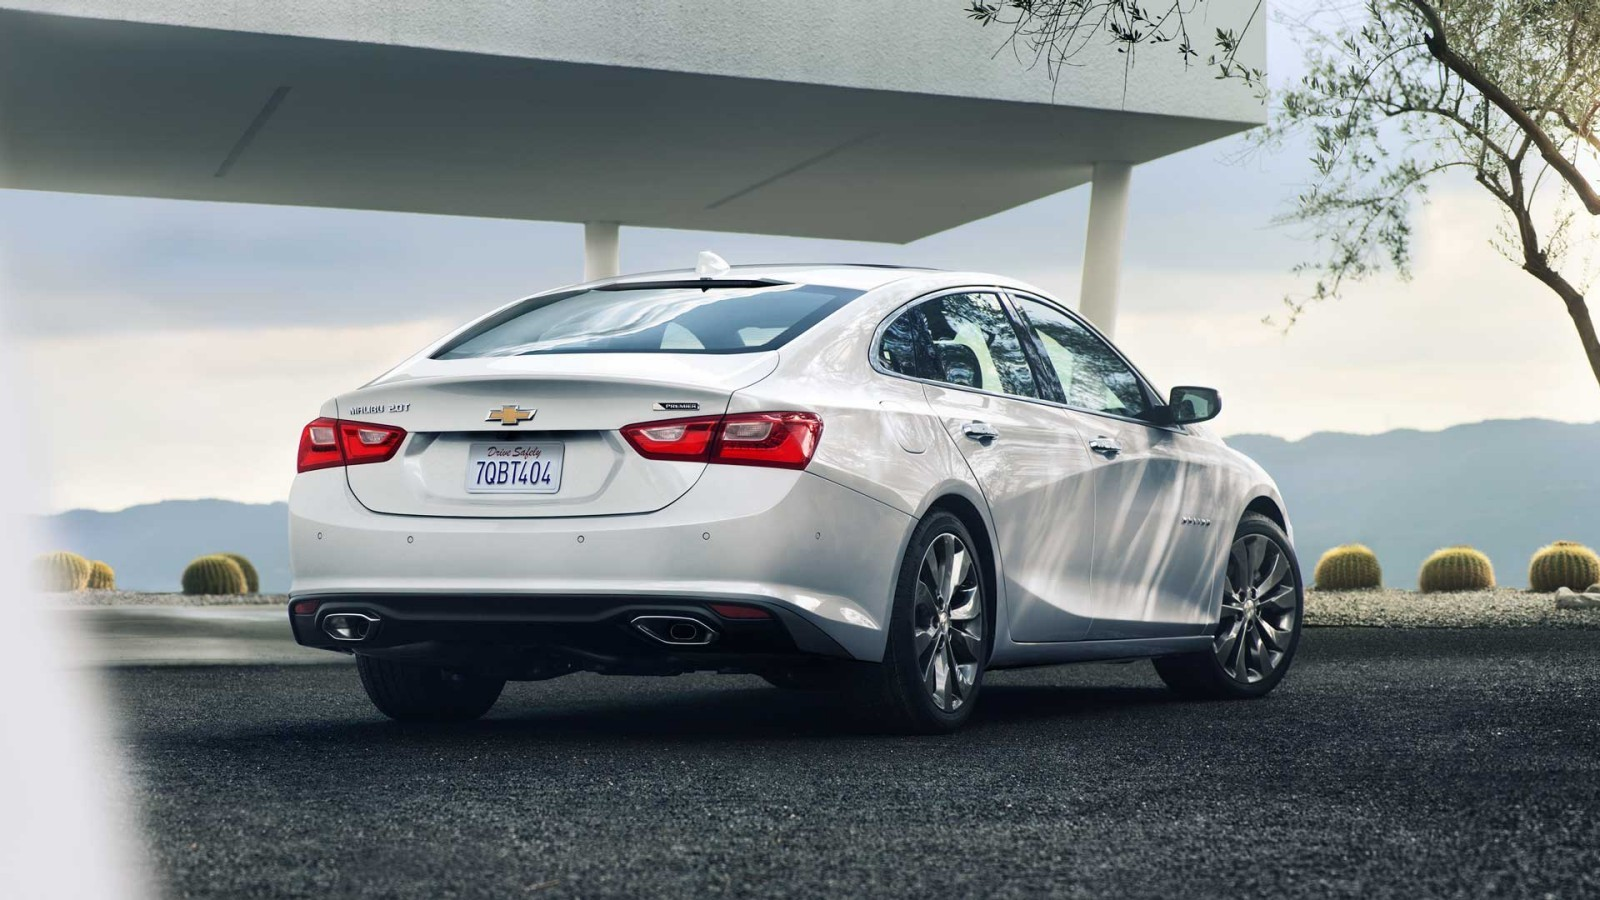 2016 Chevrolet Malibu vs 2016 Chrysler 200 near Arlington, VA